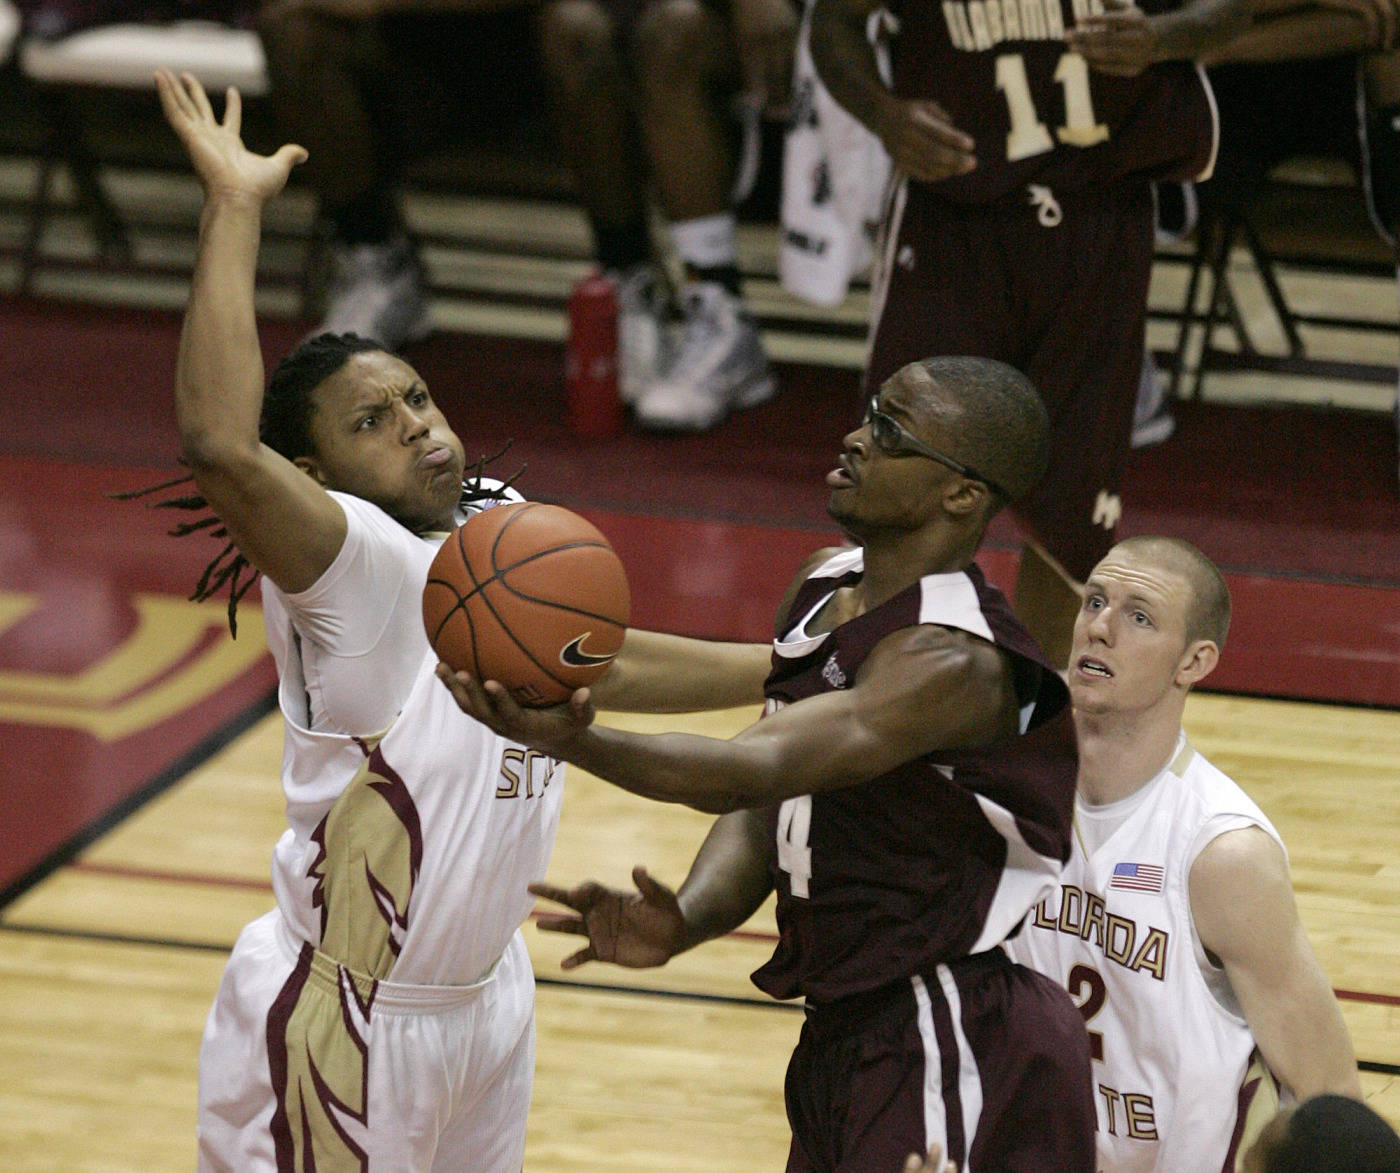 Alabama A&M's Casey Cantey tries an underhand layup against the defense of Florida State's Terrance Shannon, left, and Jordan DeMercy, right, during the second half of an NCAA college basketball game on Thursday, Dec. 31, 2009, in Tallahassee, Fla. Florida State won 81-34. (AP Photo/Steve Cannon)